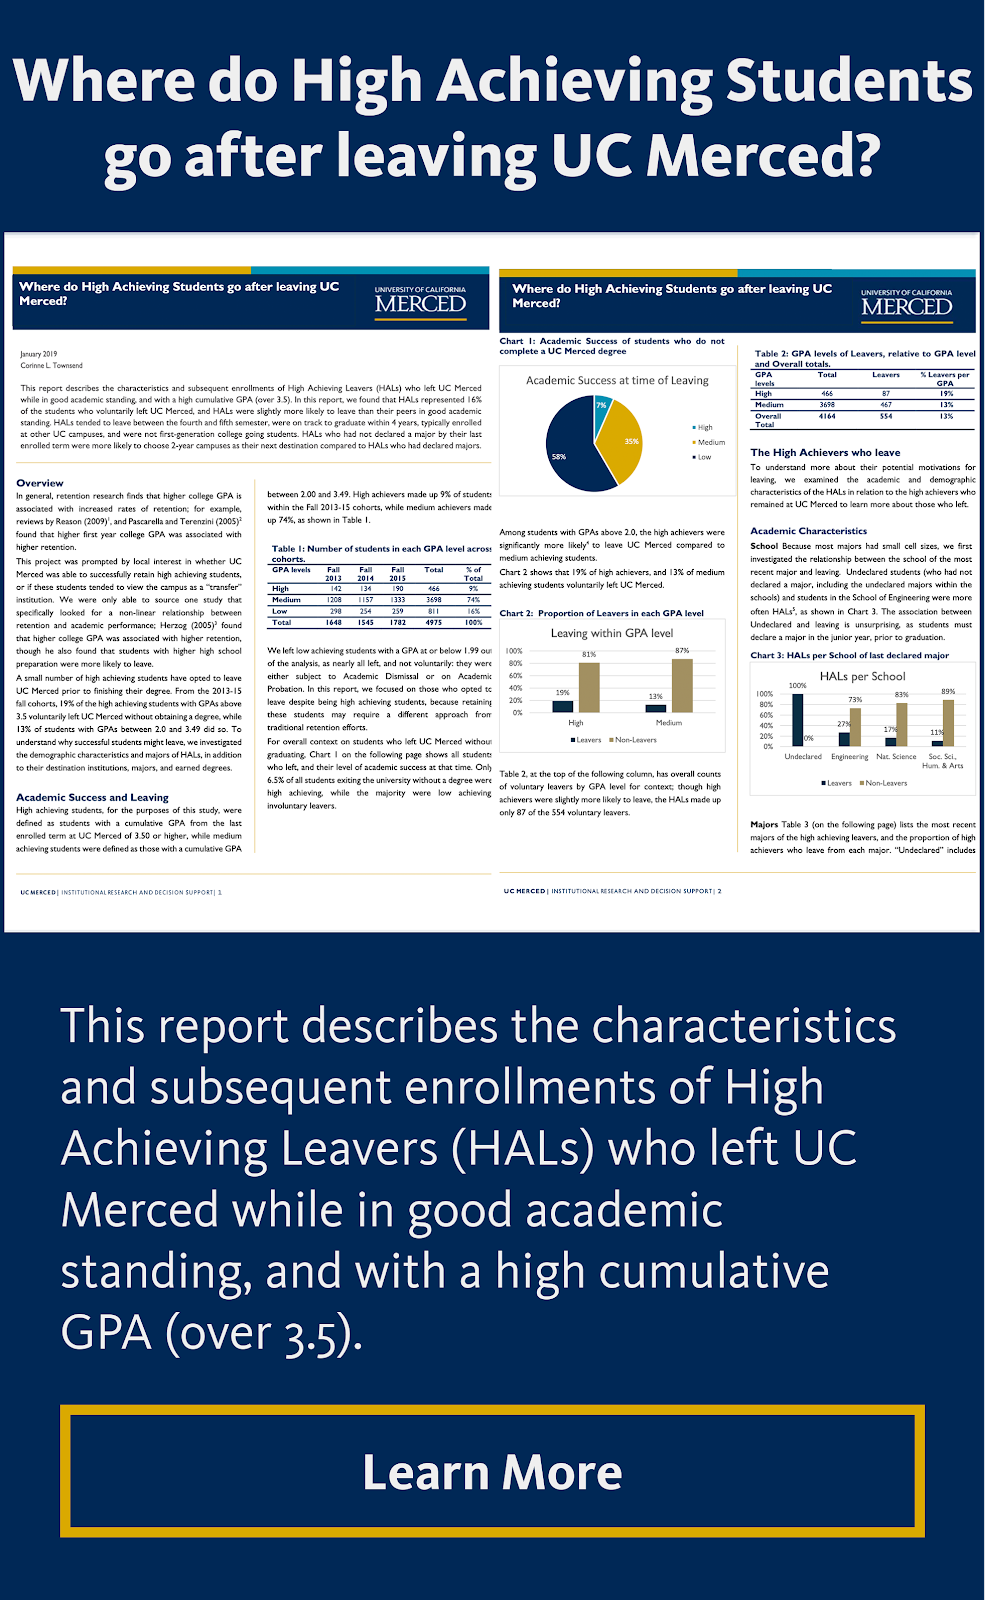 Where do High Achieving Students go after leaving UC Merced?